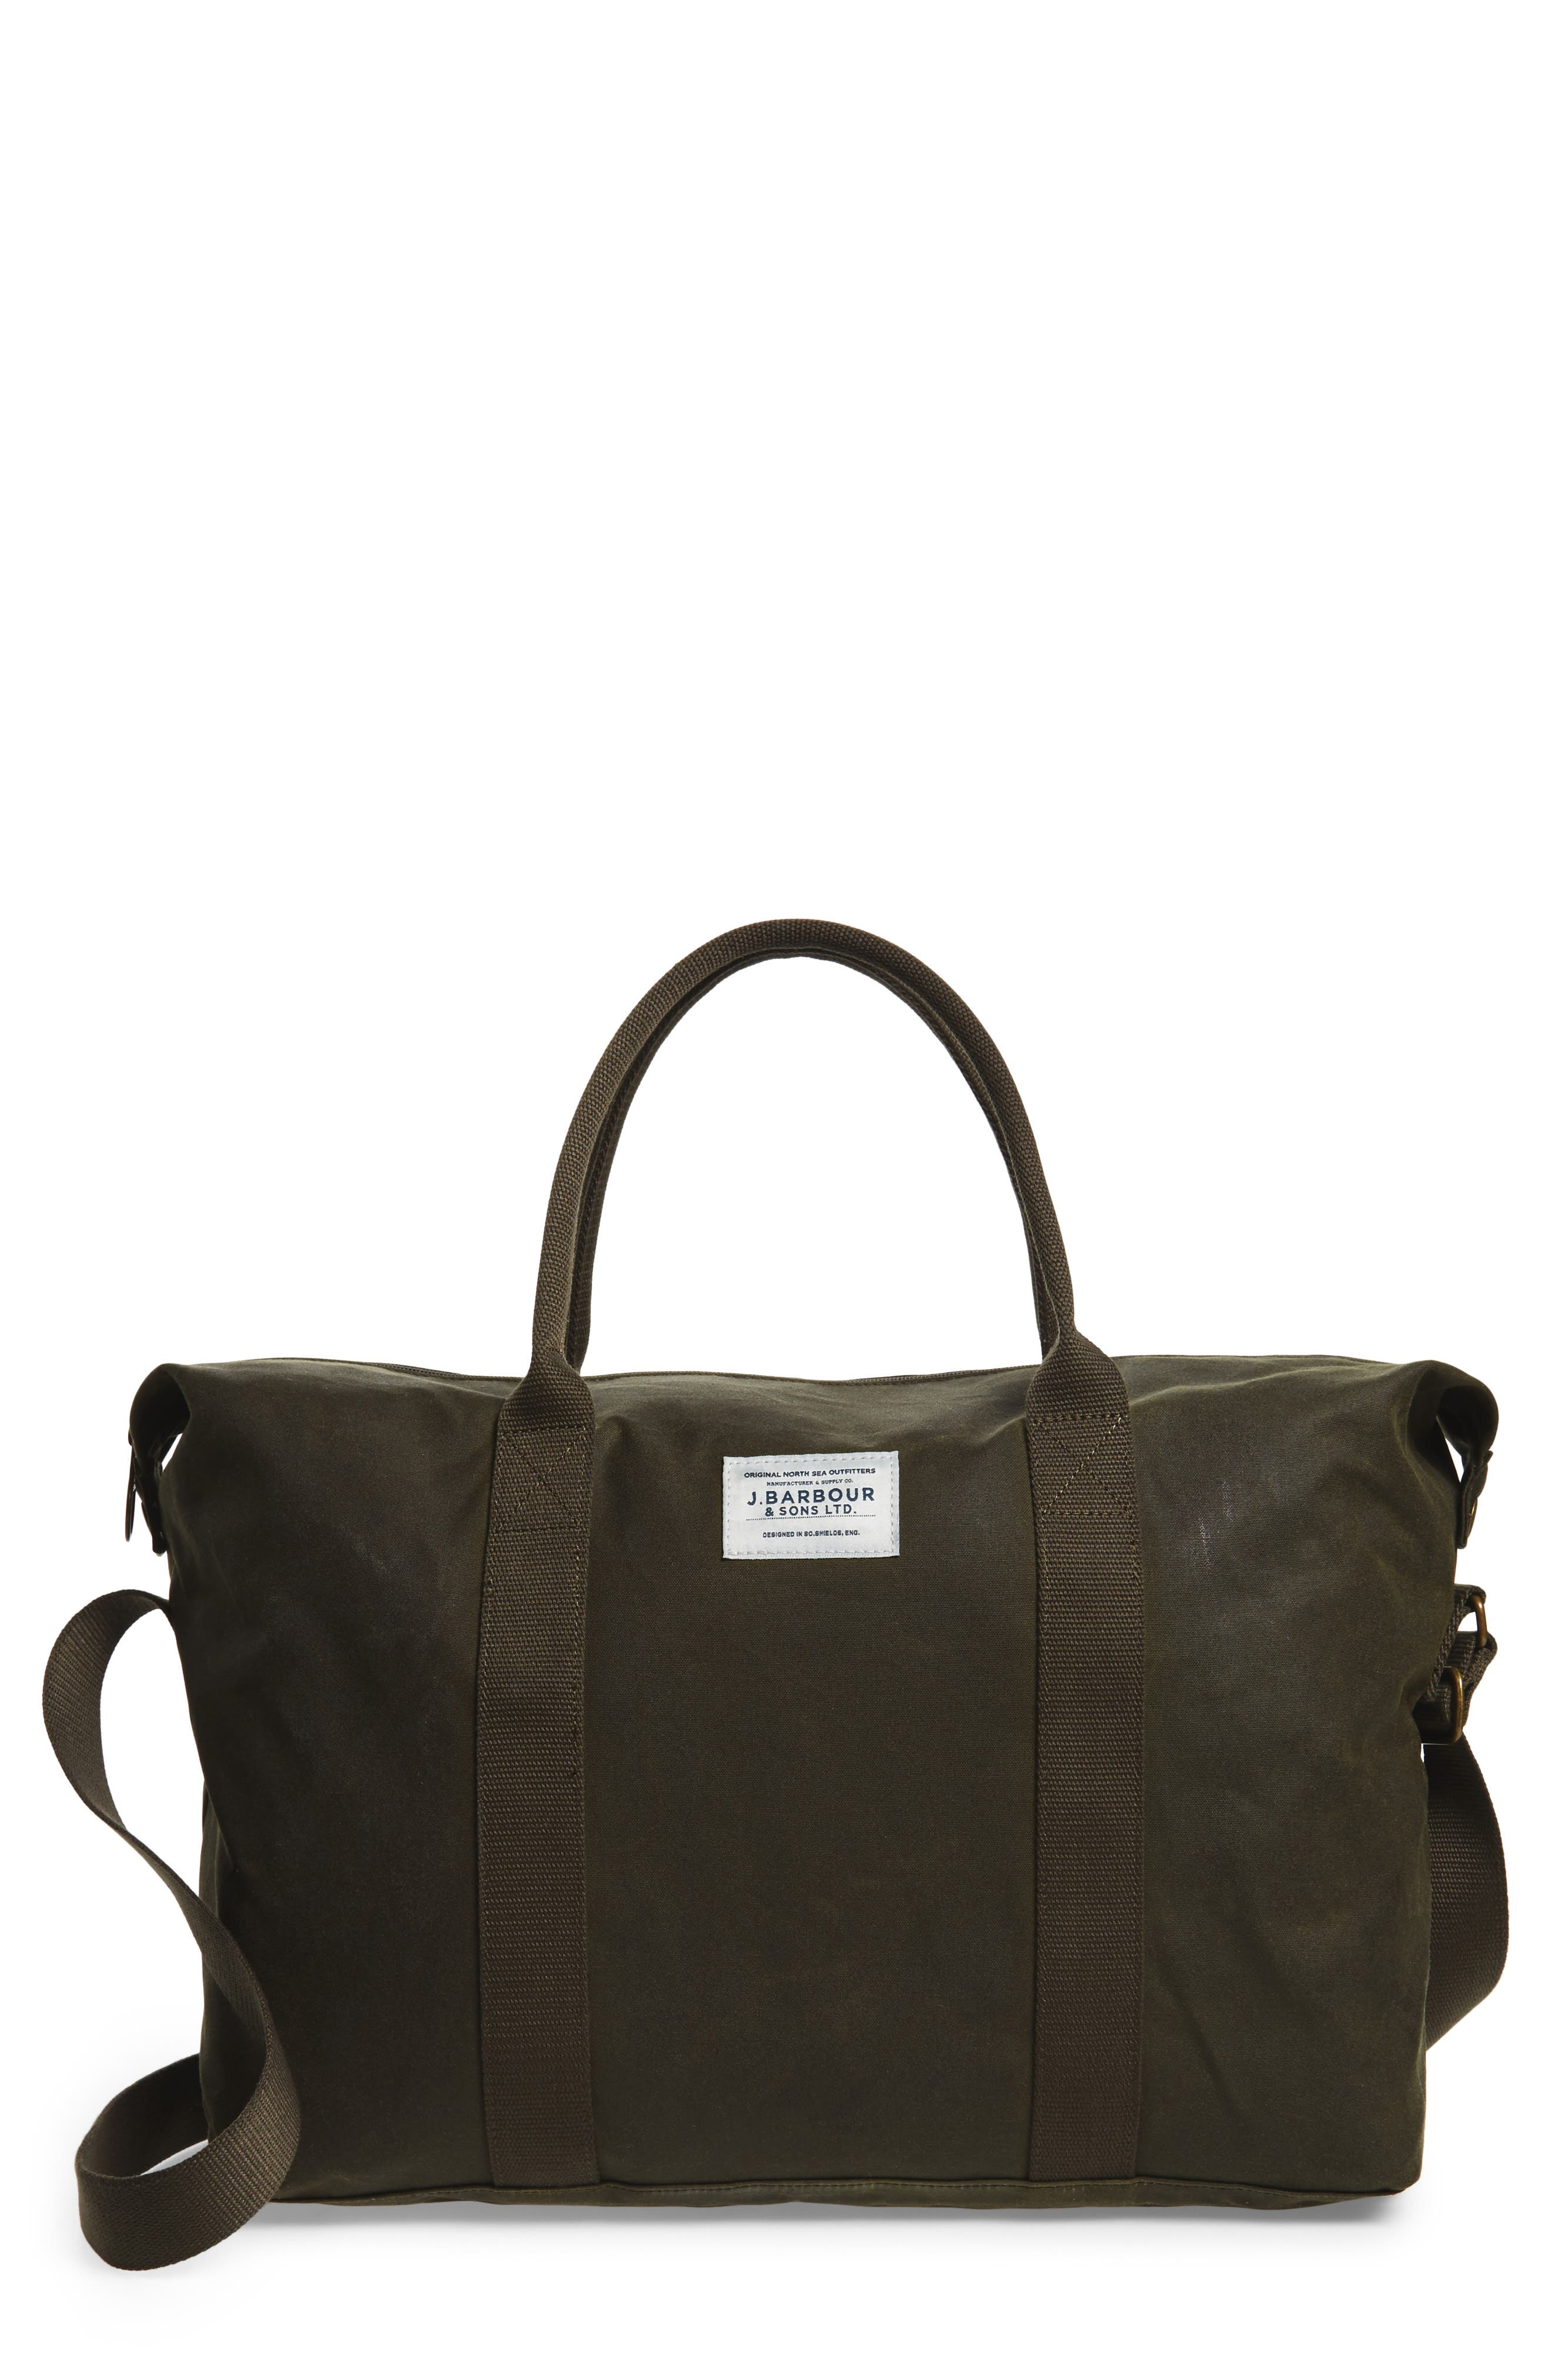 Archive Holdall Bag,                         Main,                         color, 300